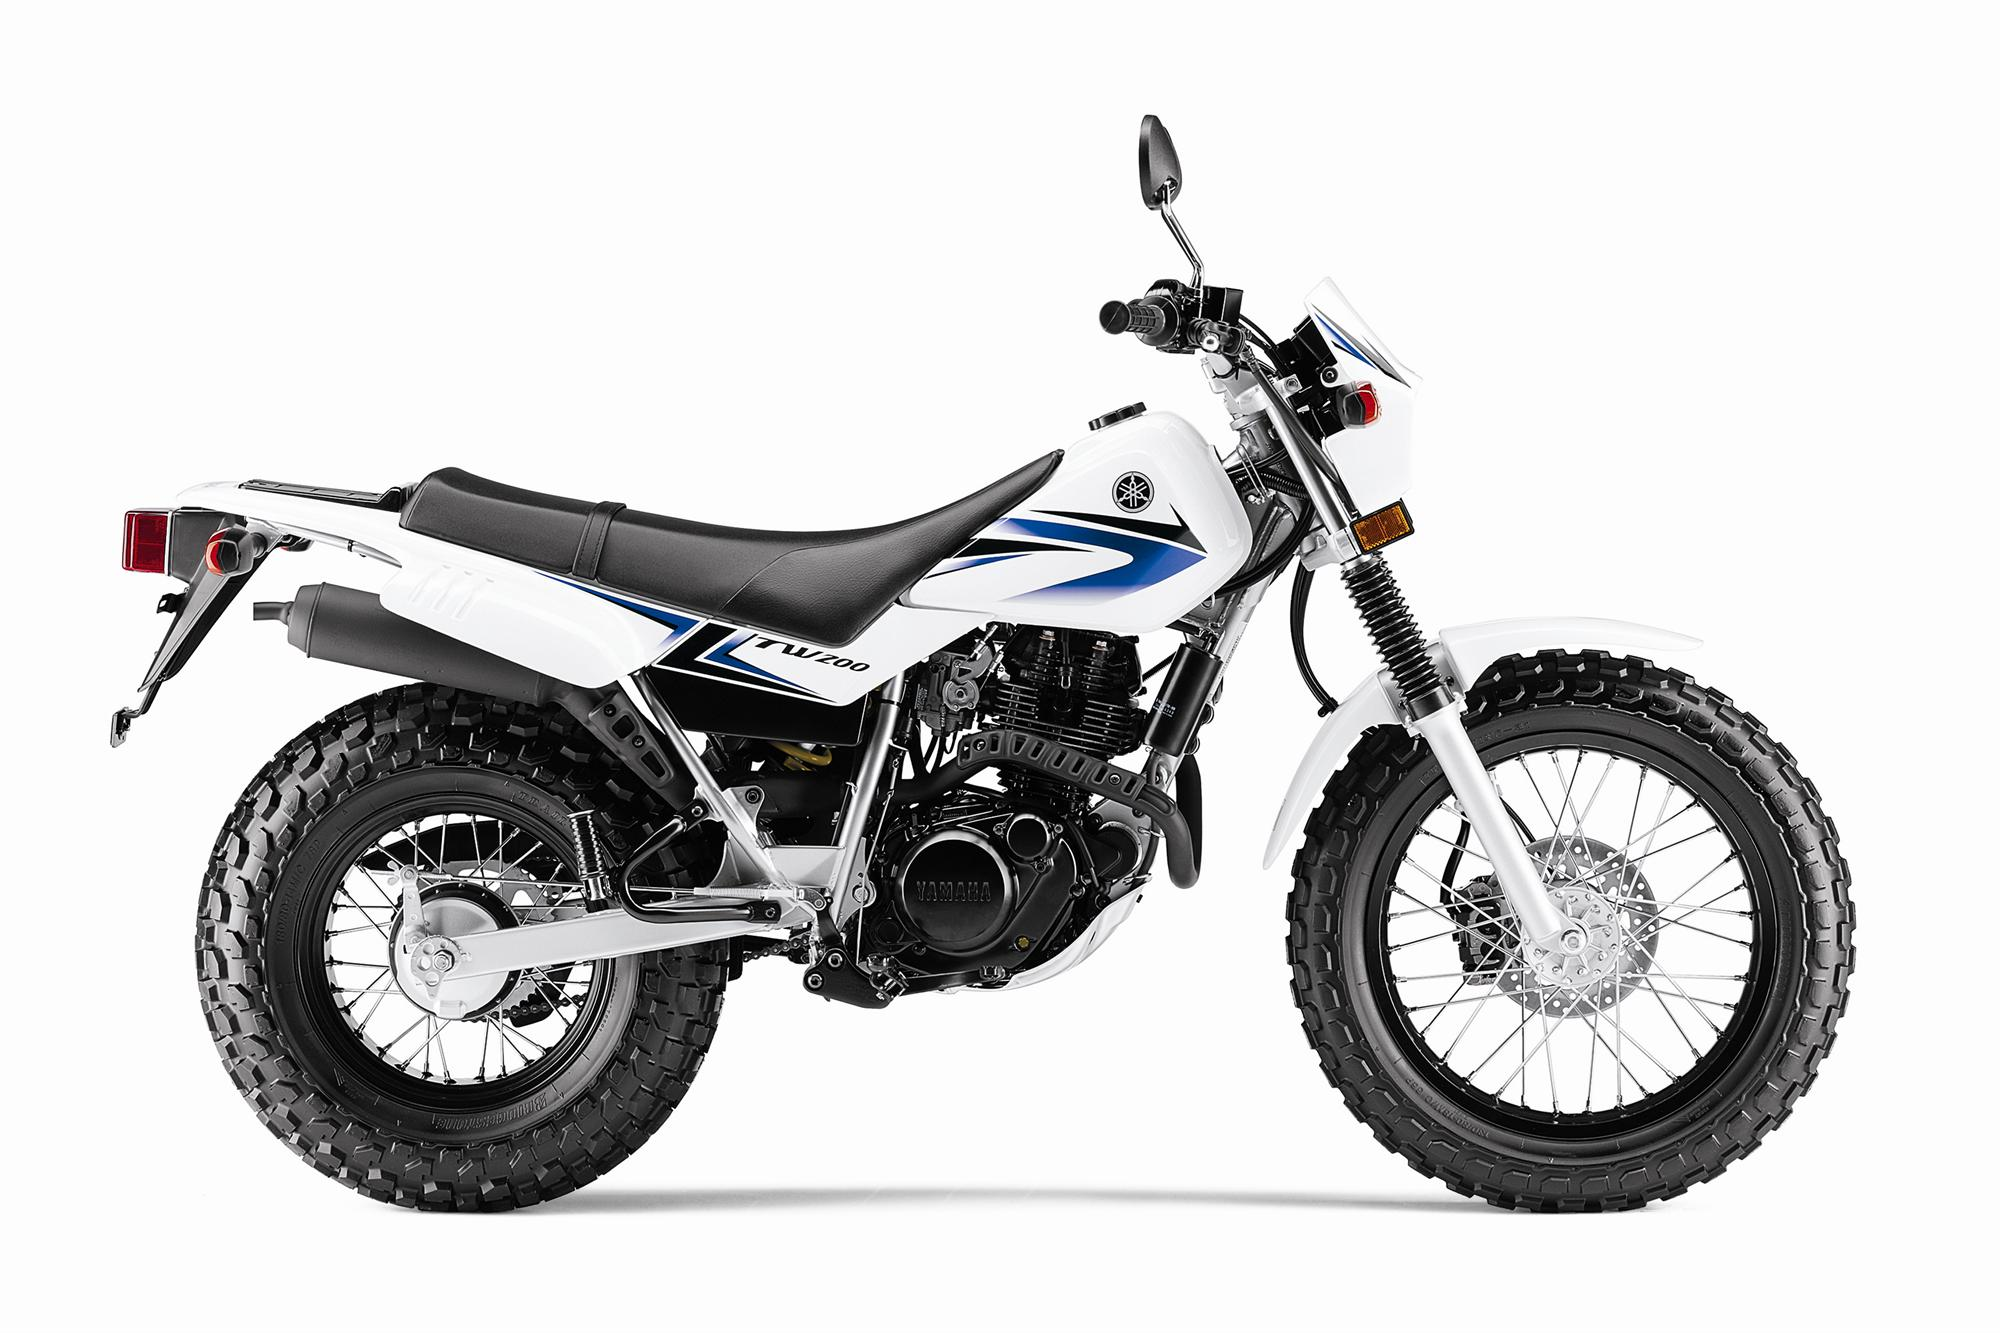 2013 yamaha tw200 is still a spectacularly fun bike